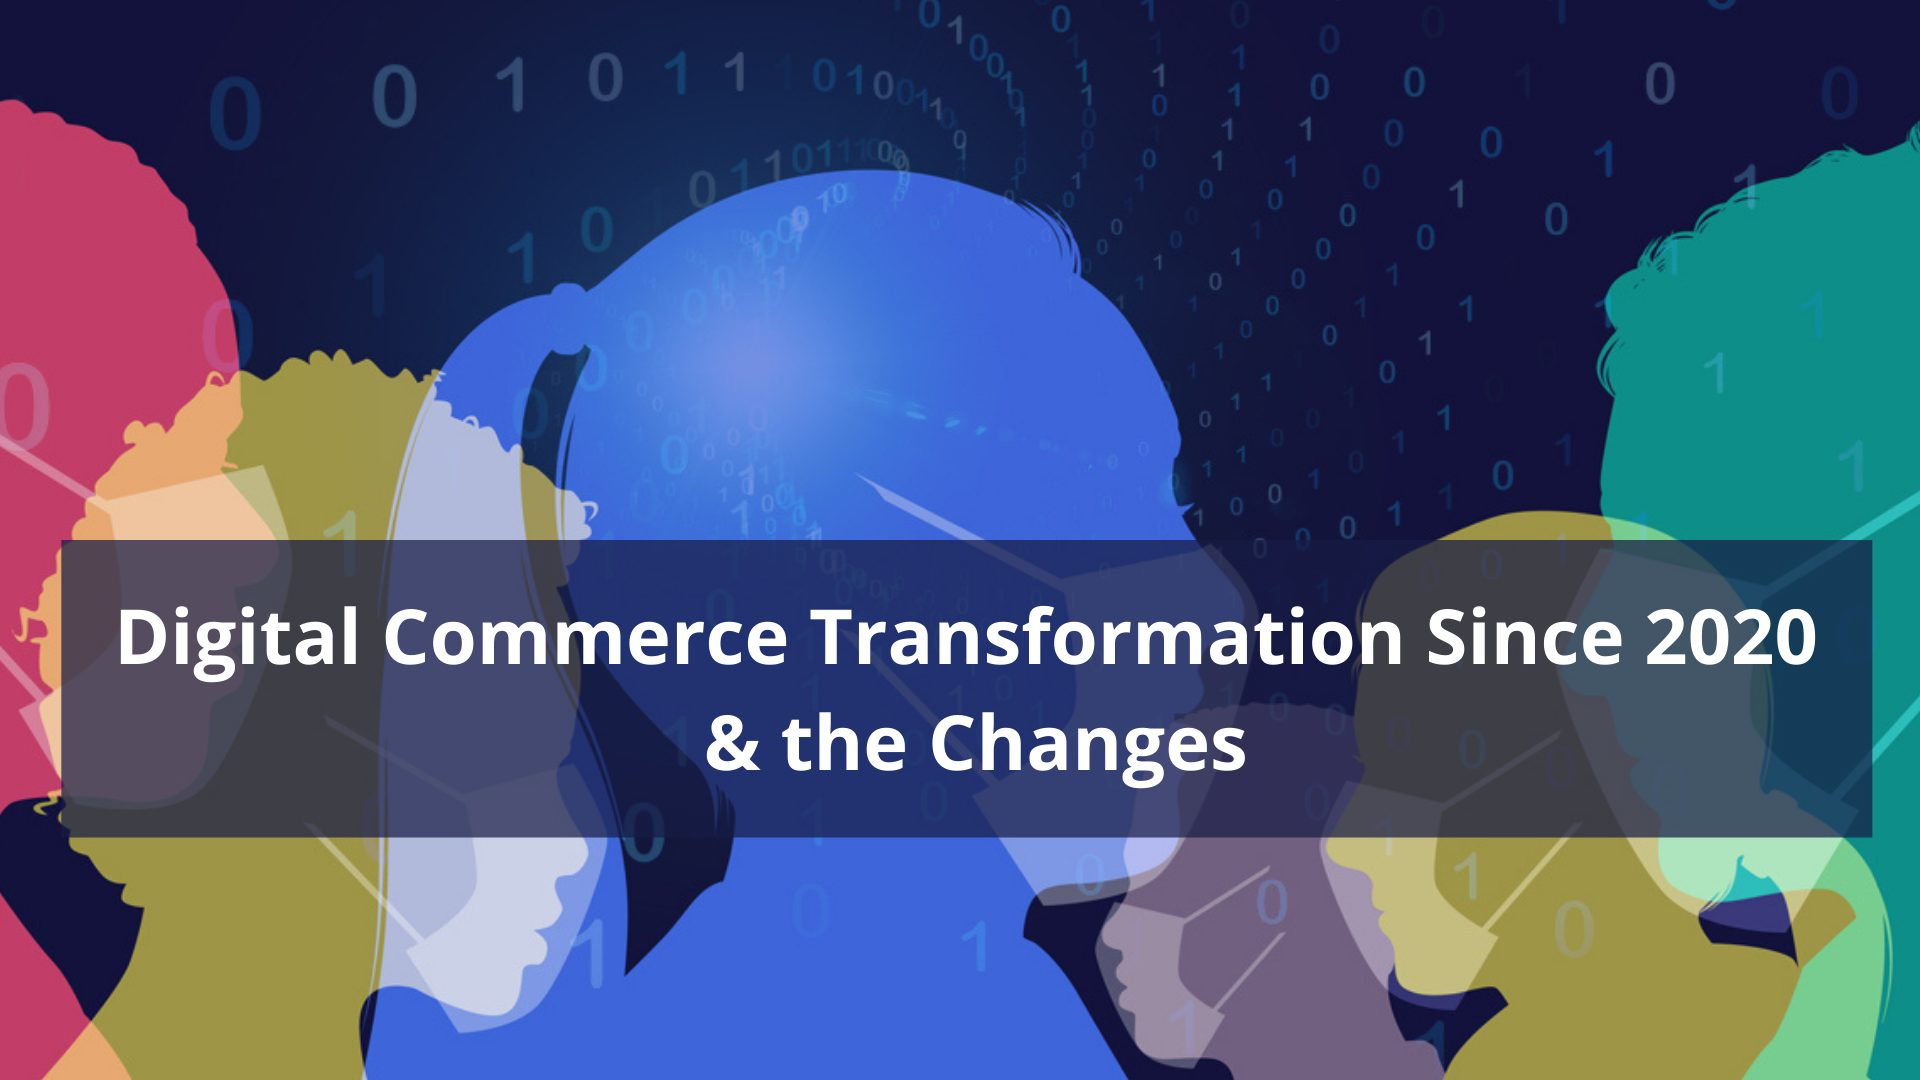 Digital Commerce Transformation Since 2020 And the Changes Ahead